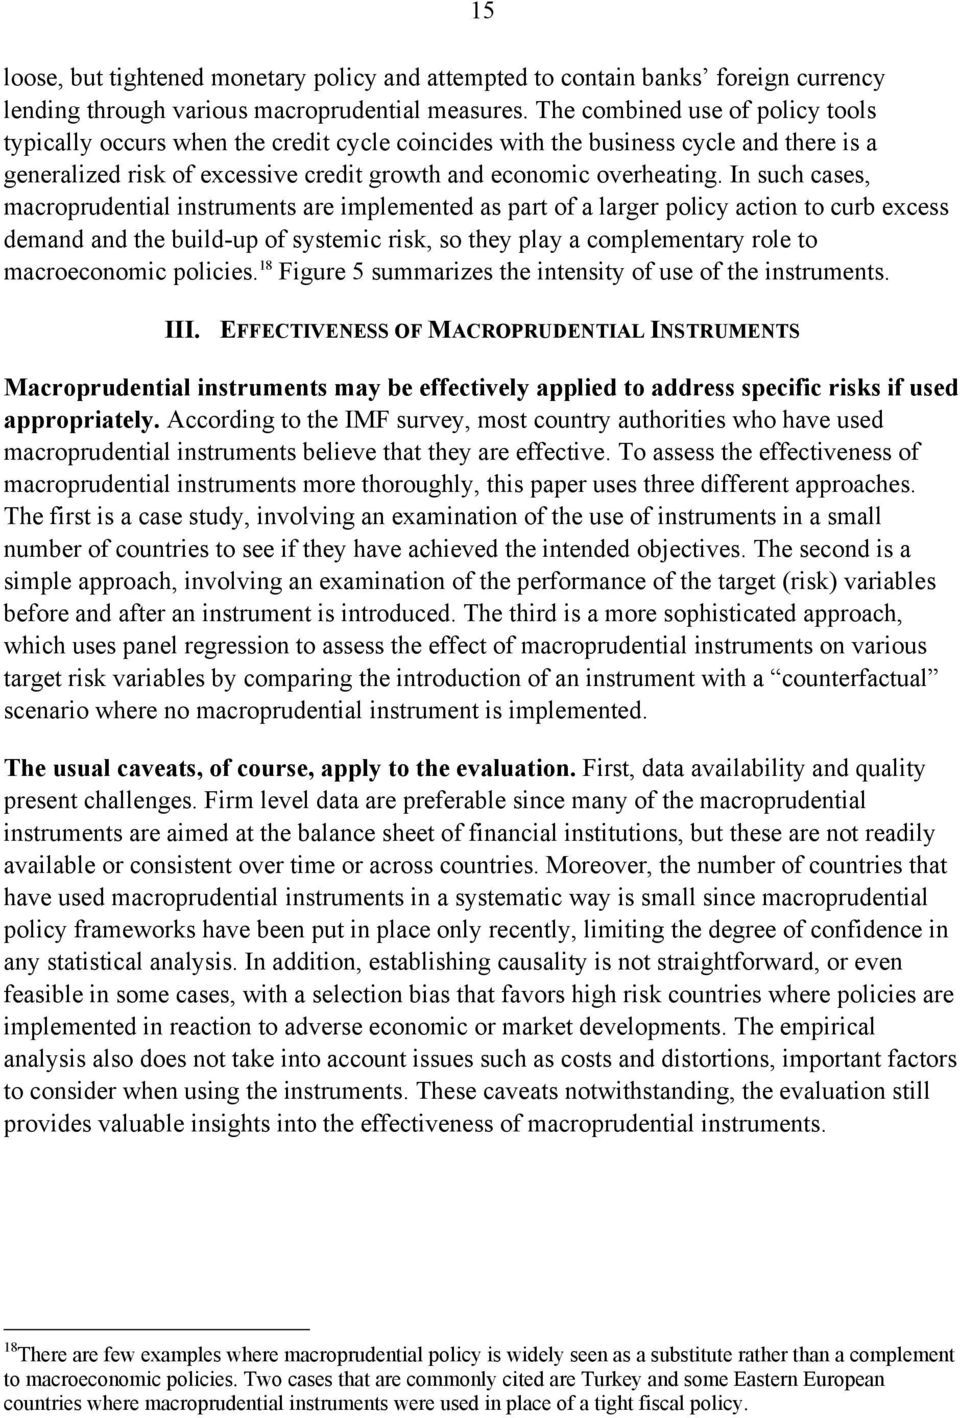 In such cases, macroprudential instruments are implemented as part of a larger policy action to curb excess demand and the build-up of systemic risk, so they play a complementary role to